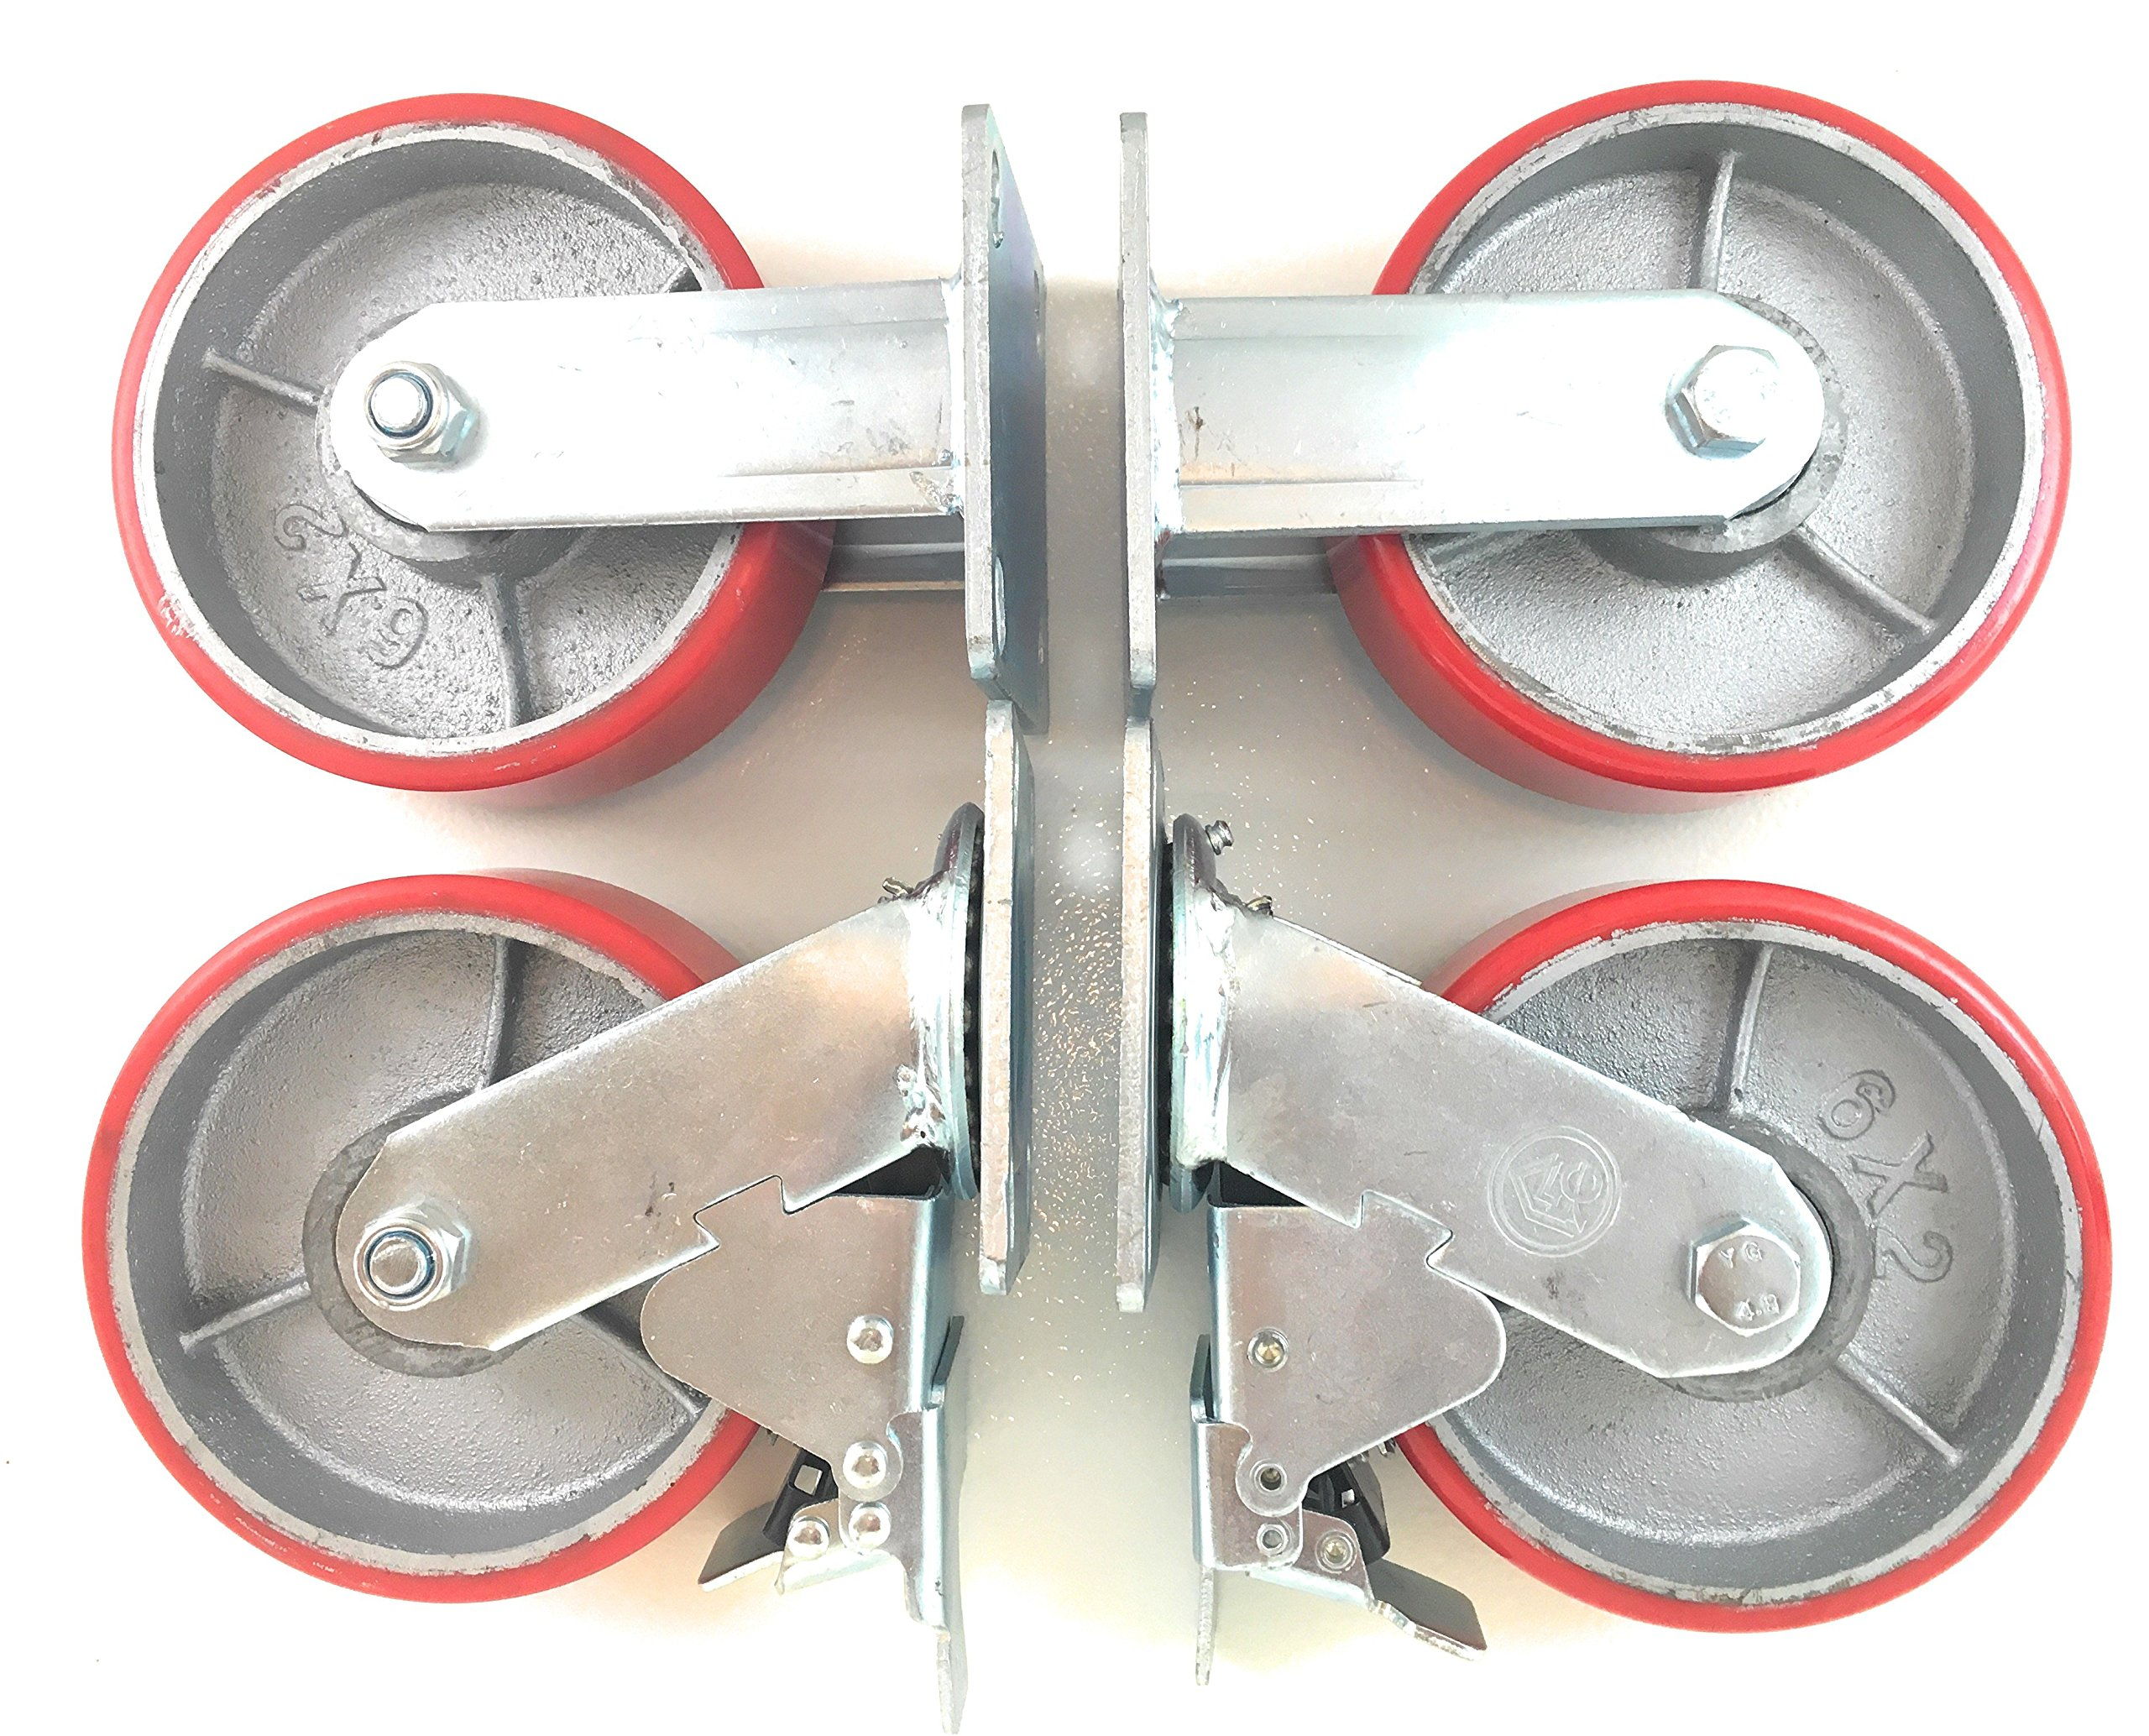 6'' x 2'' Heavy Duty Metal CASTERS with Poly Tread - Set of 4 Wheels, 2 Fixed, 2 Swivel w/Brakes - Swivel Casters are Locking - Foghorn Construction by Foghorn Construction